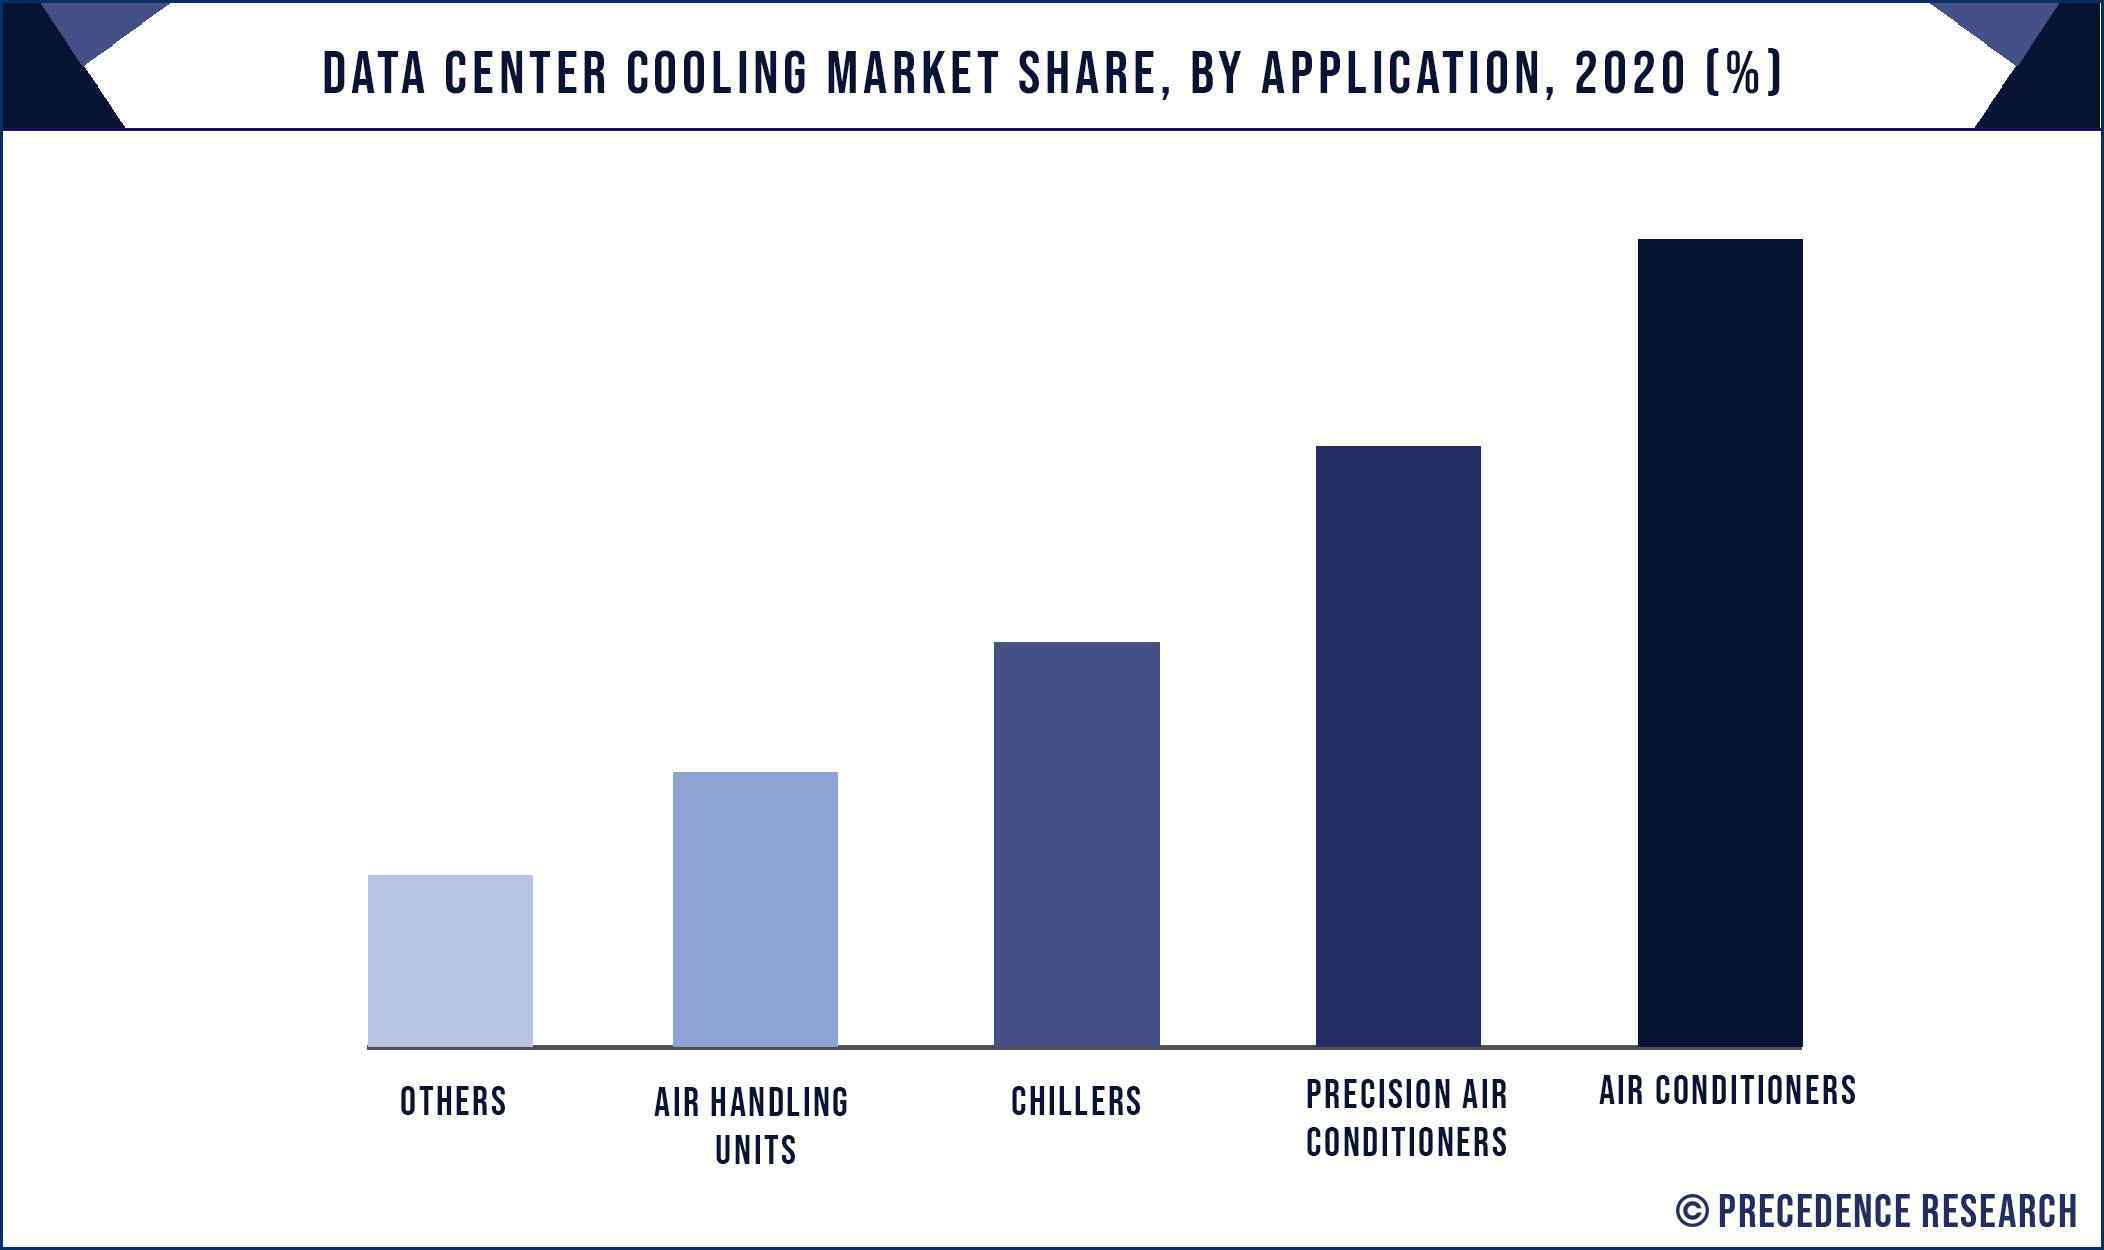 Data Center Cooling Market Share, By Application, 2020 (%)